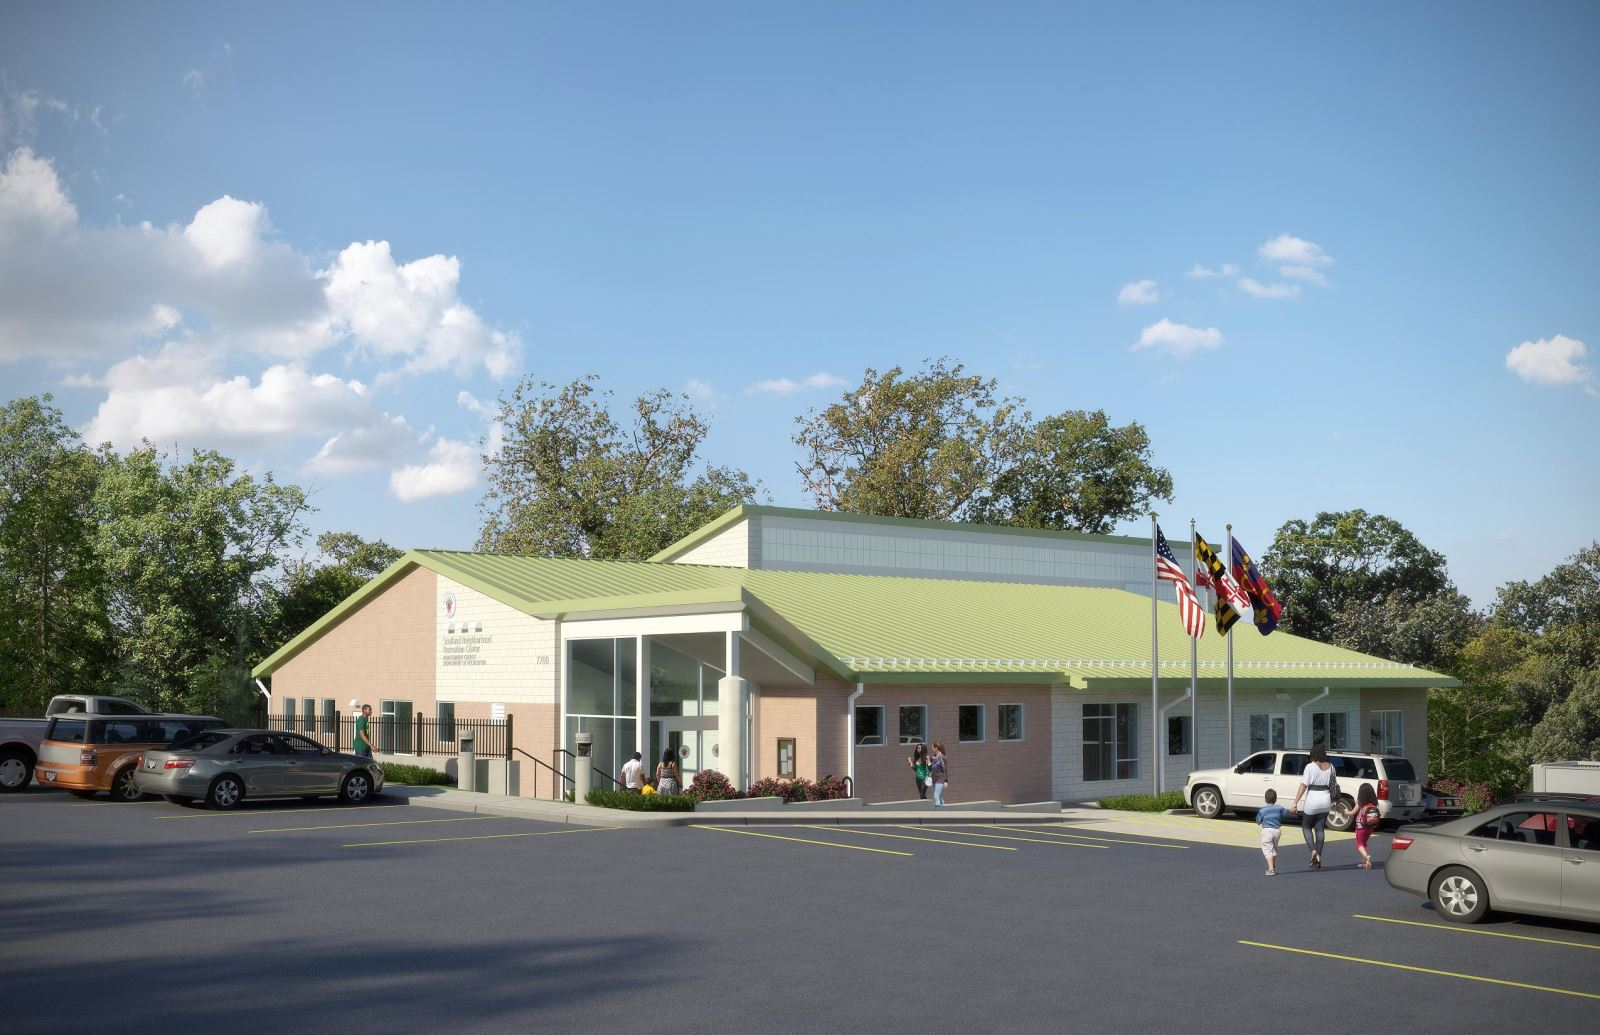 Picture of Scotland Community Recreation Center